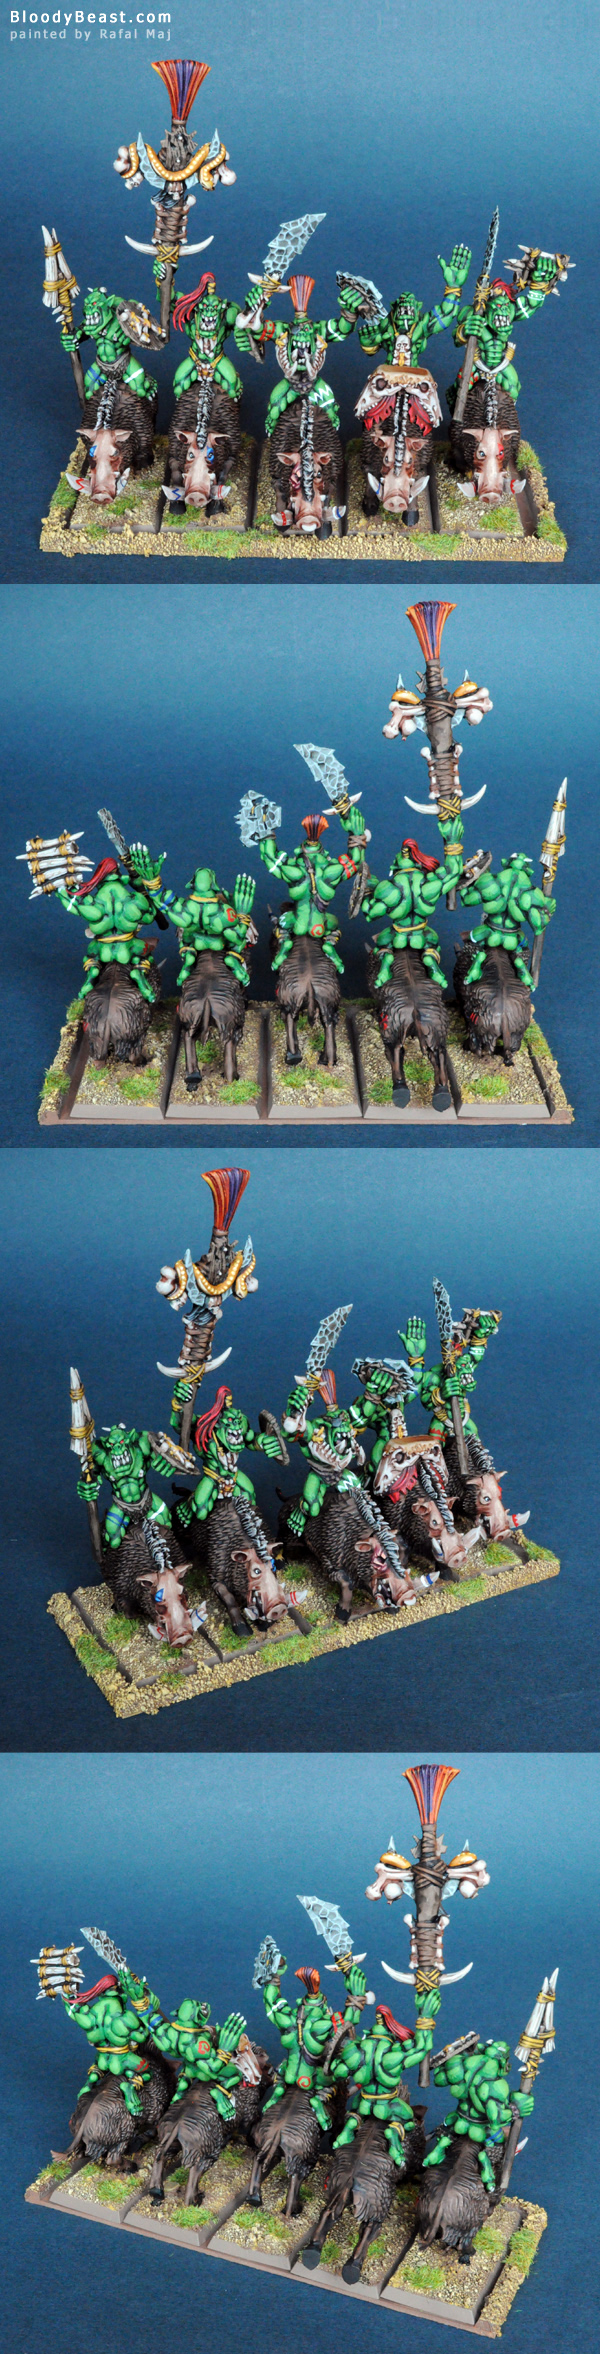 Savage Orc Boar Boyz with Command Group painted by Rafal Maj (BloodyBeast.com)